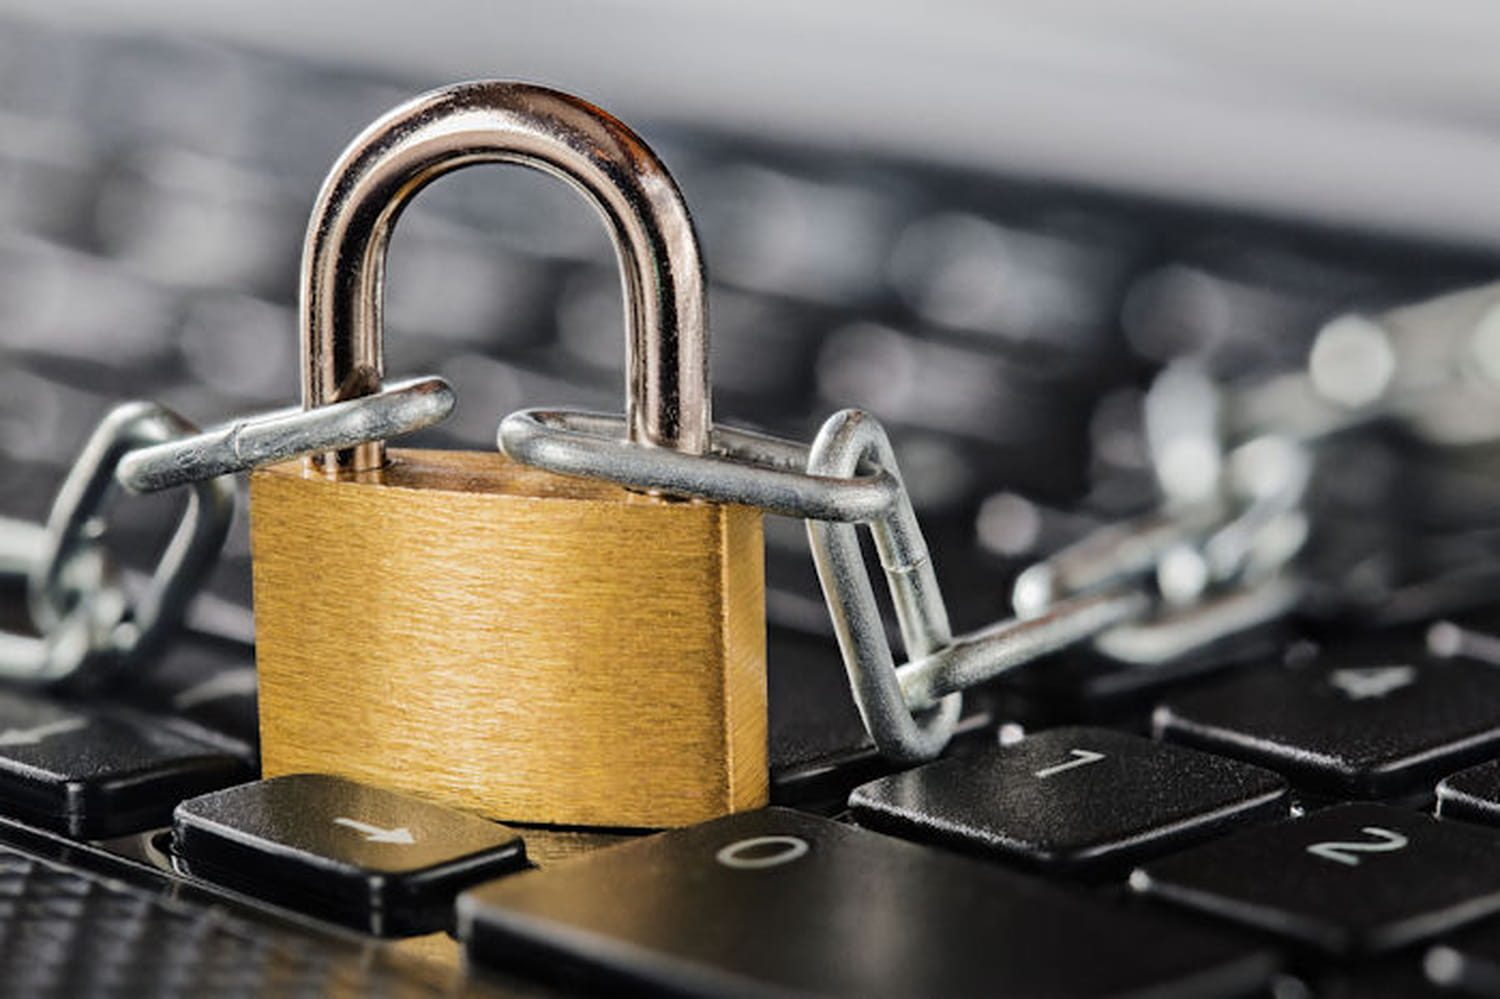 Data protection officer (DPO): RGPD, Cnil, définition...